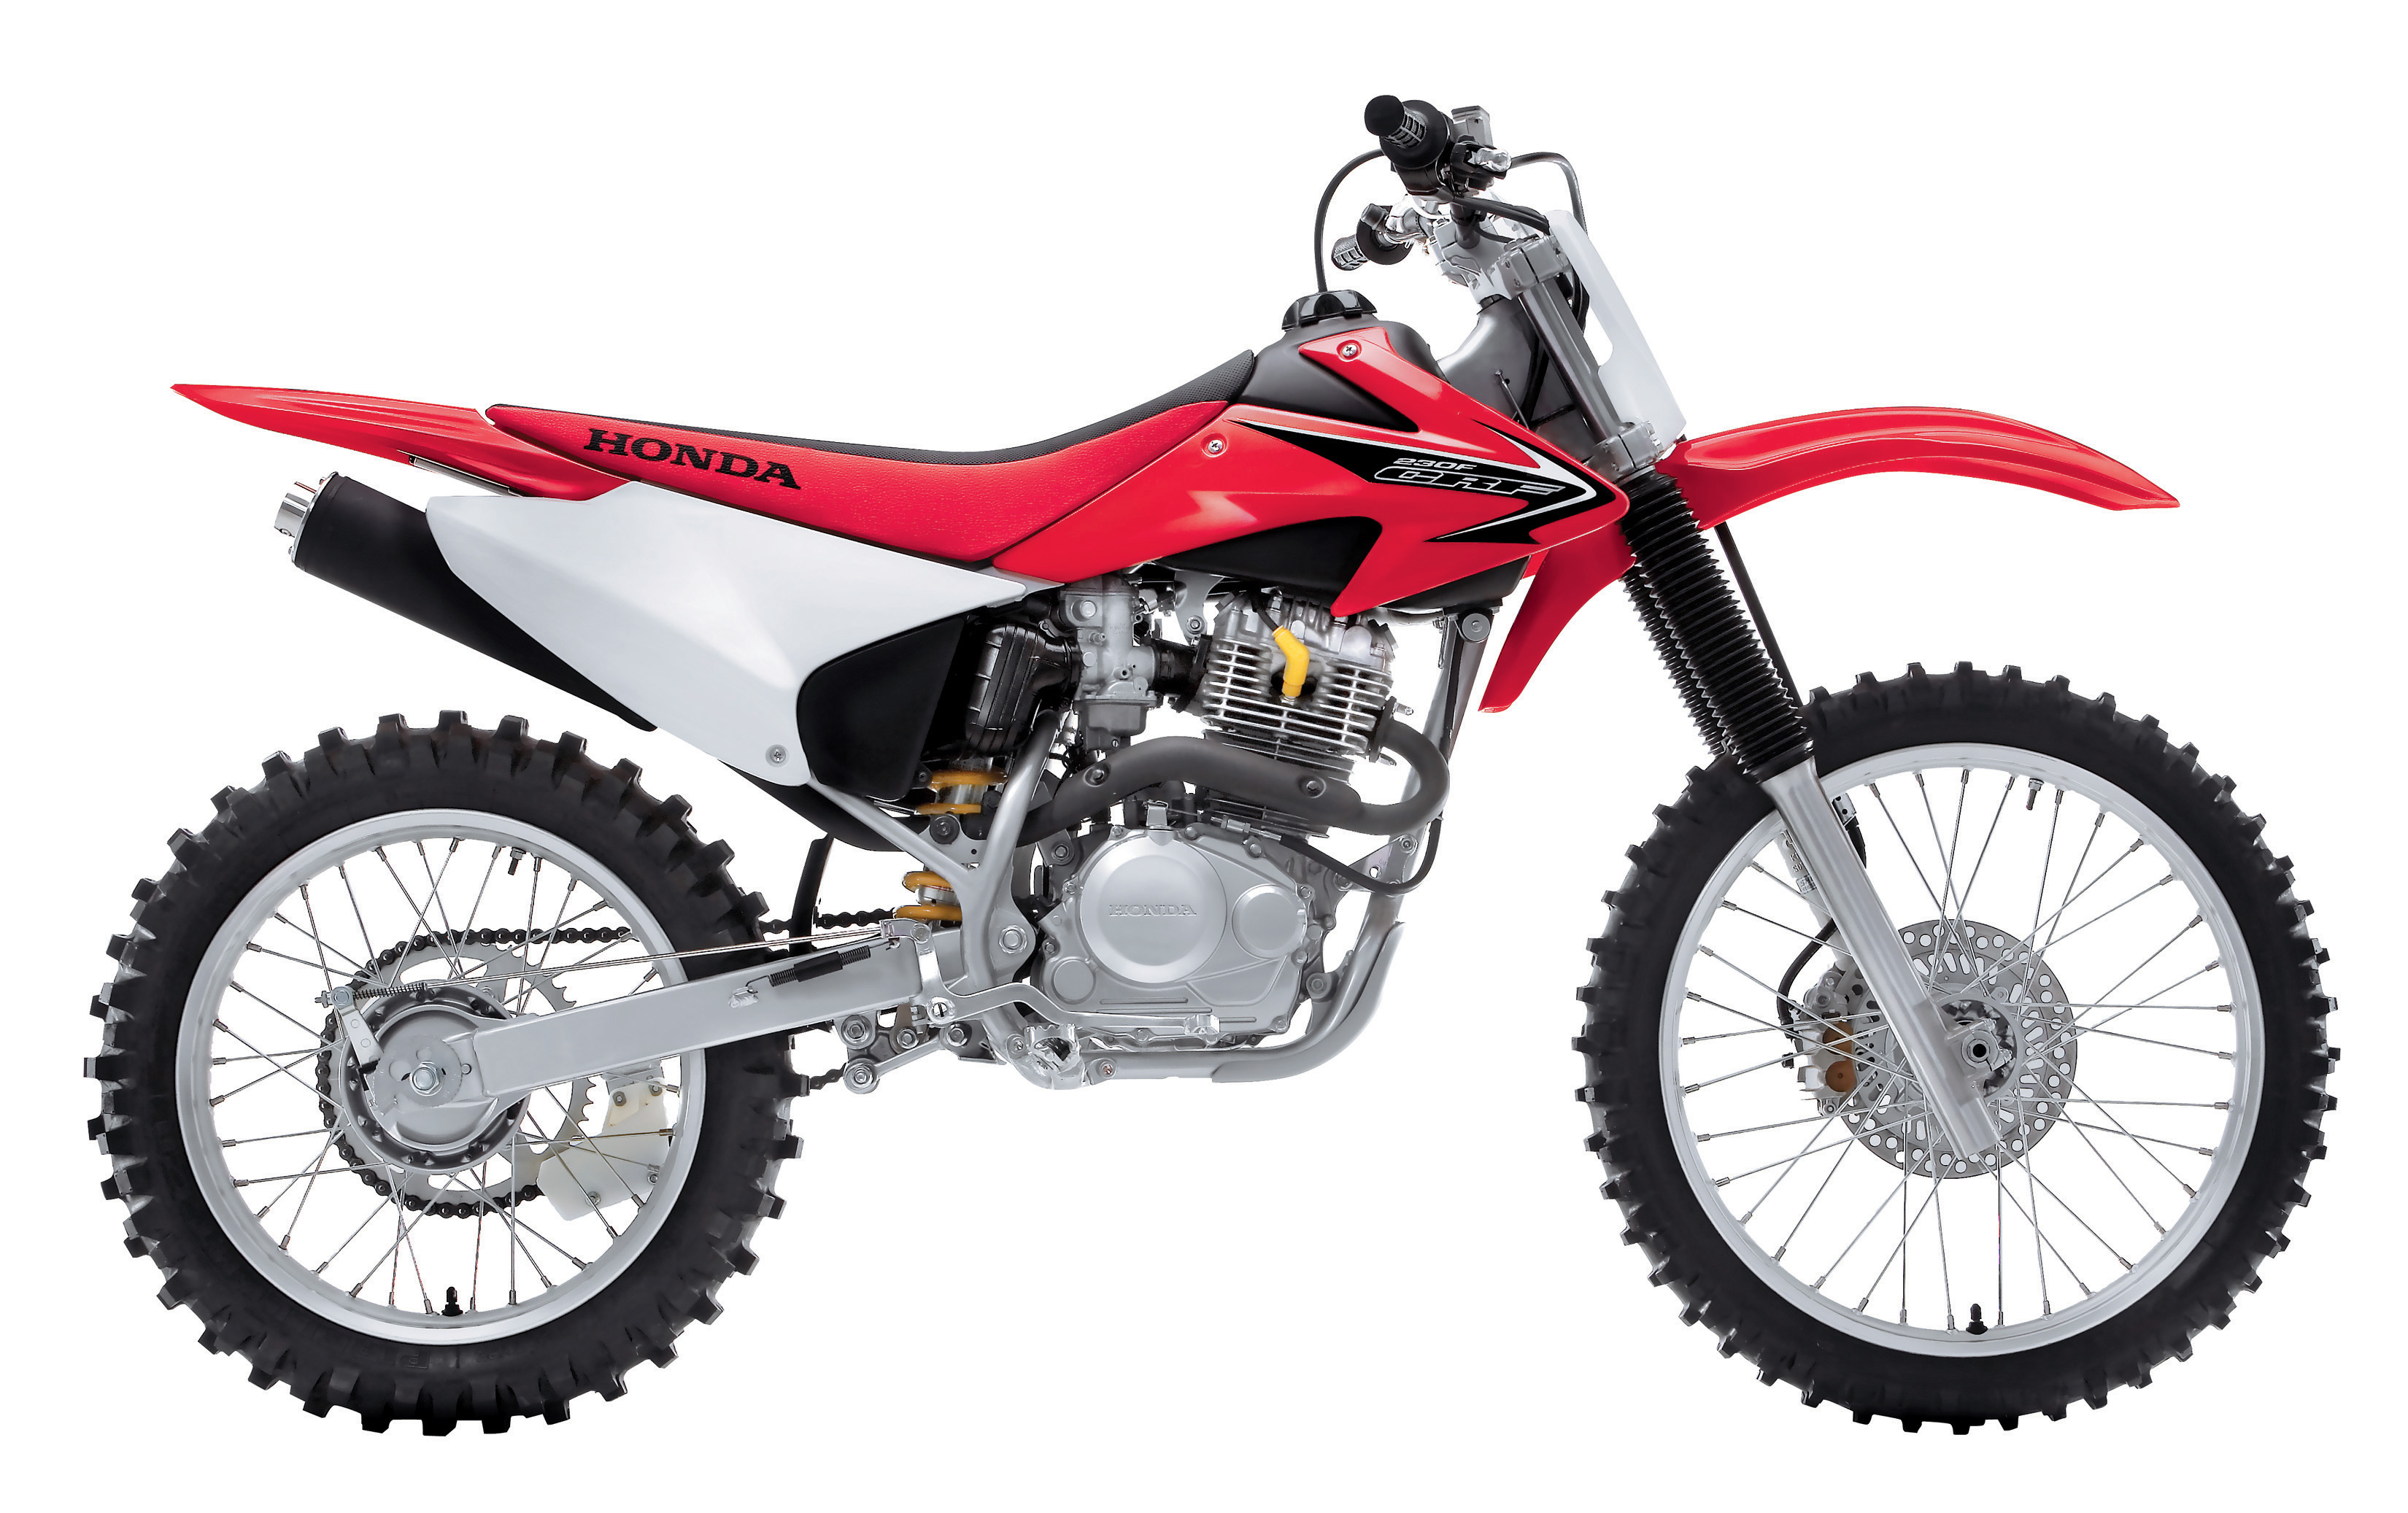 2002 - 2008 Honda CRF230F | Top Speed